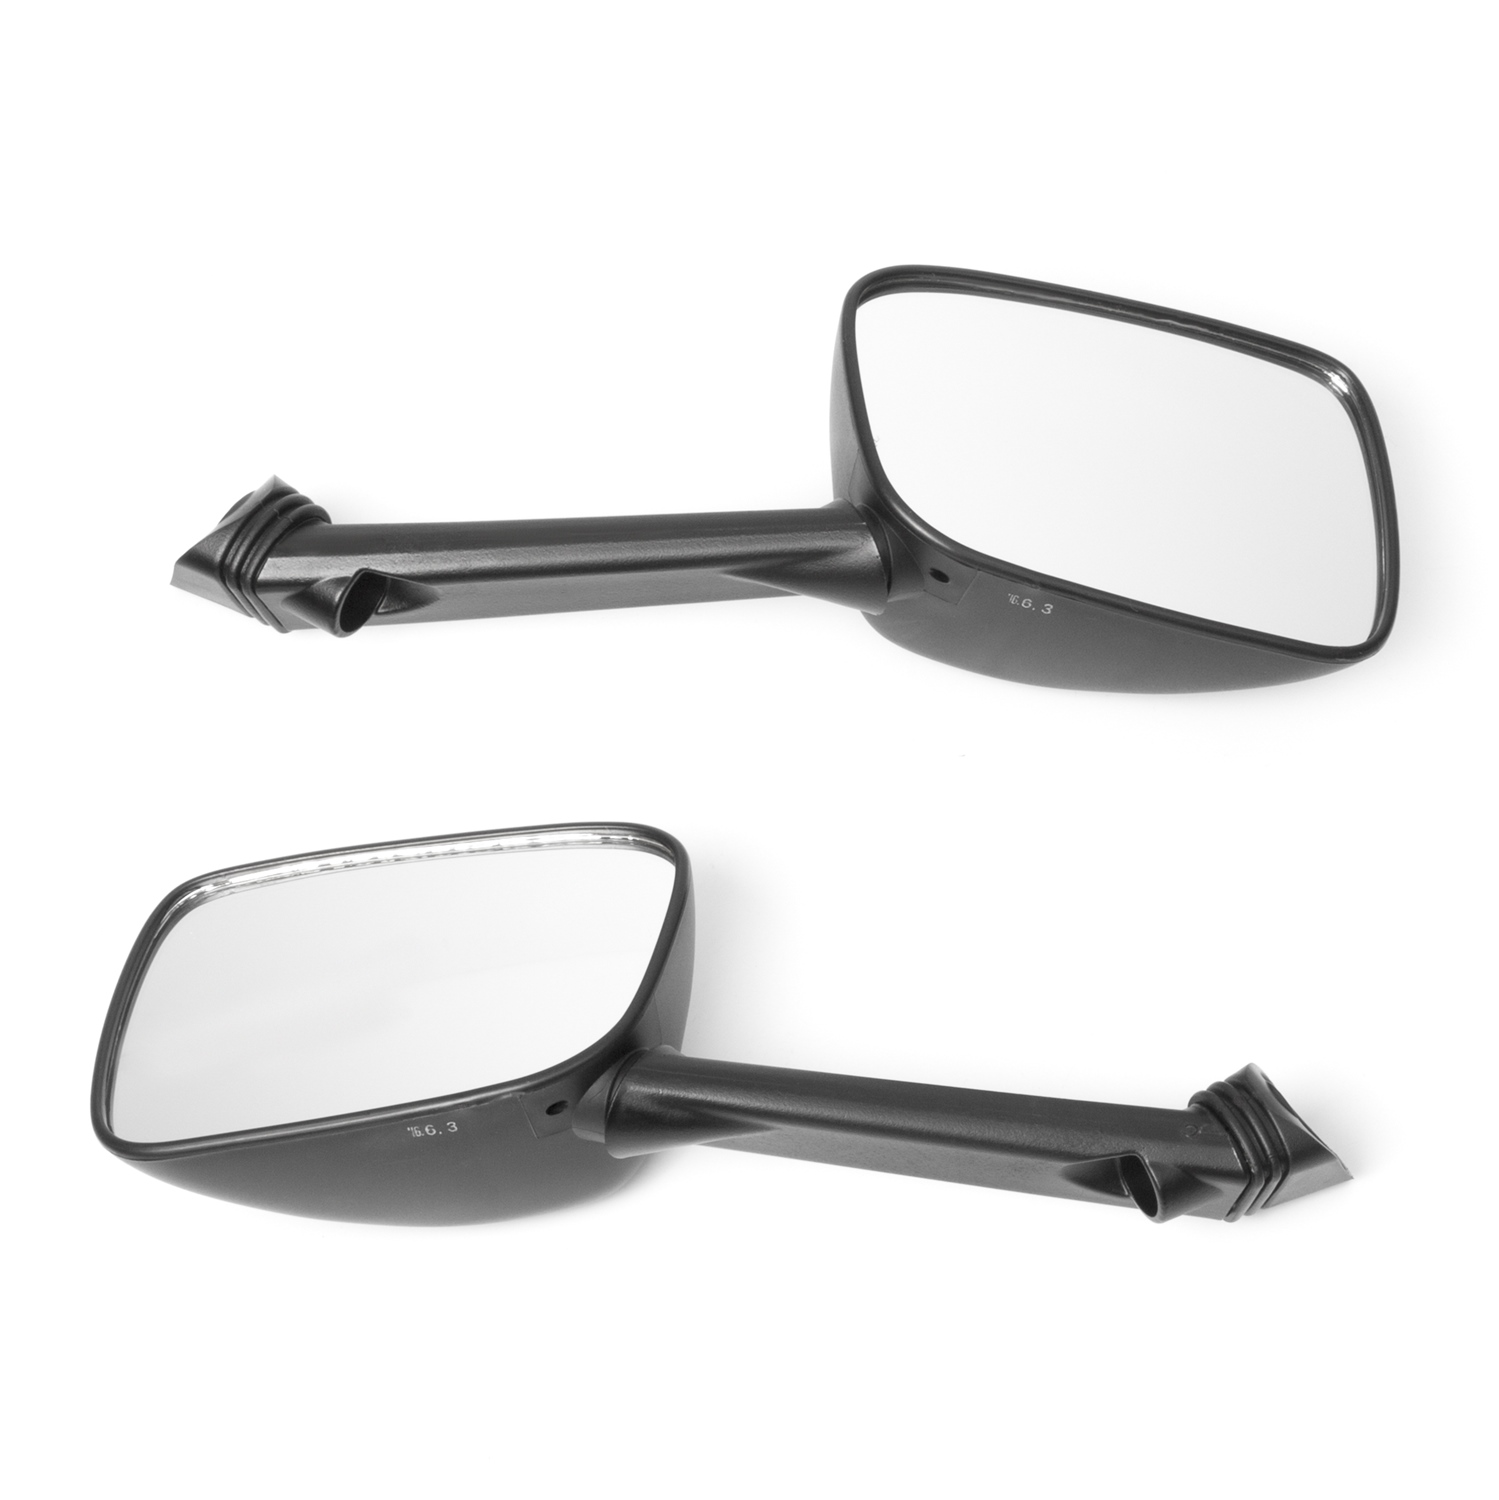 Equal Quality RD02818 Skull Cap Cover-Side Rear-View Mirror